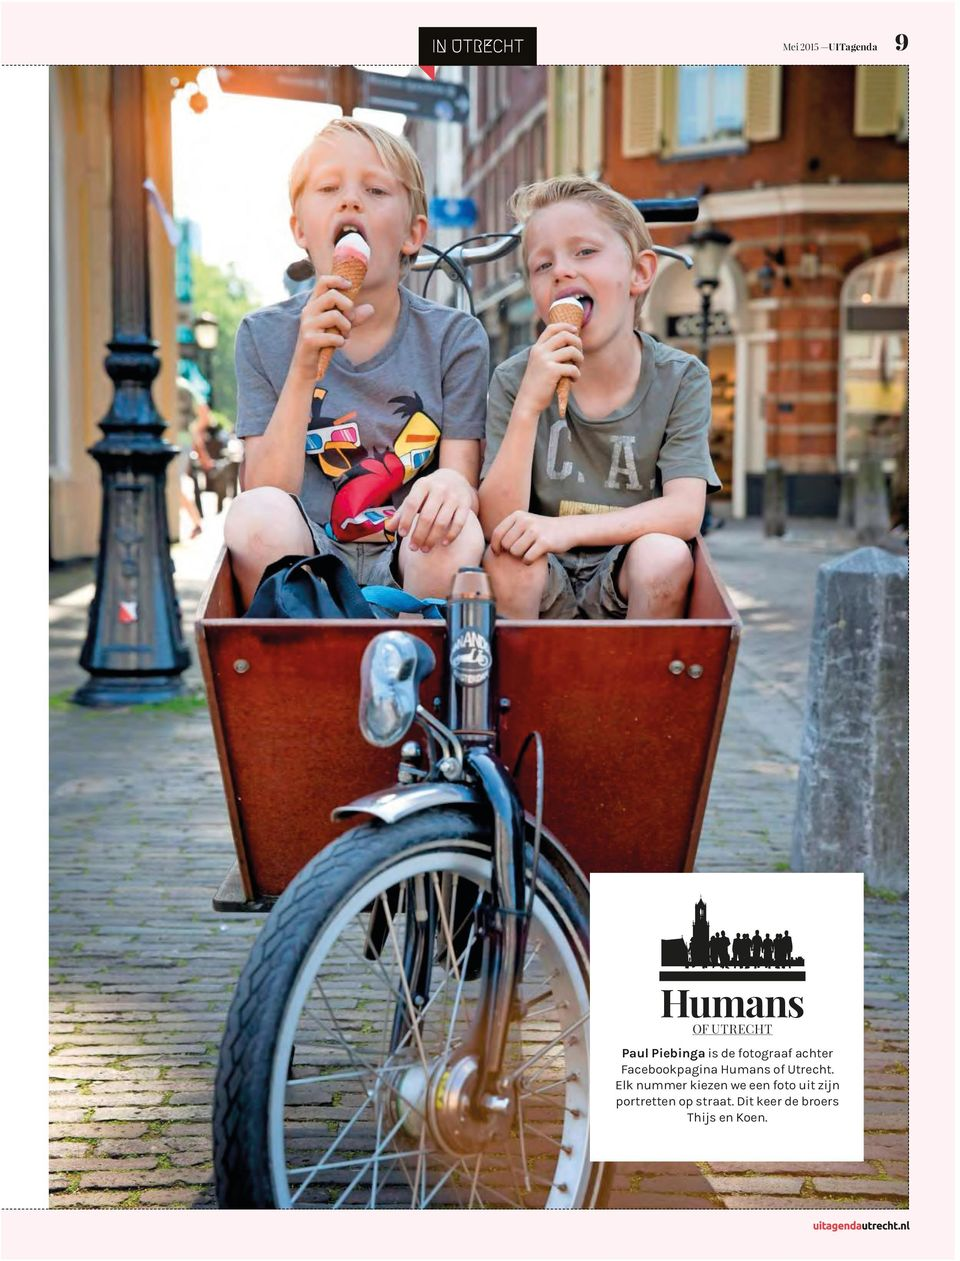 Humans of Utrecht.